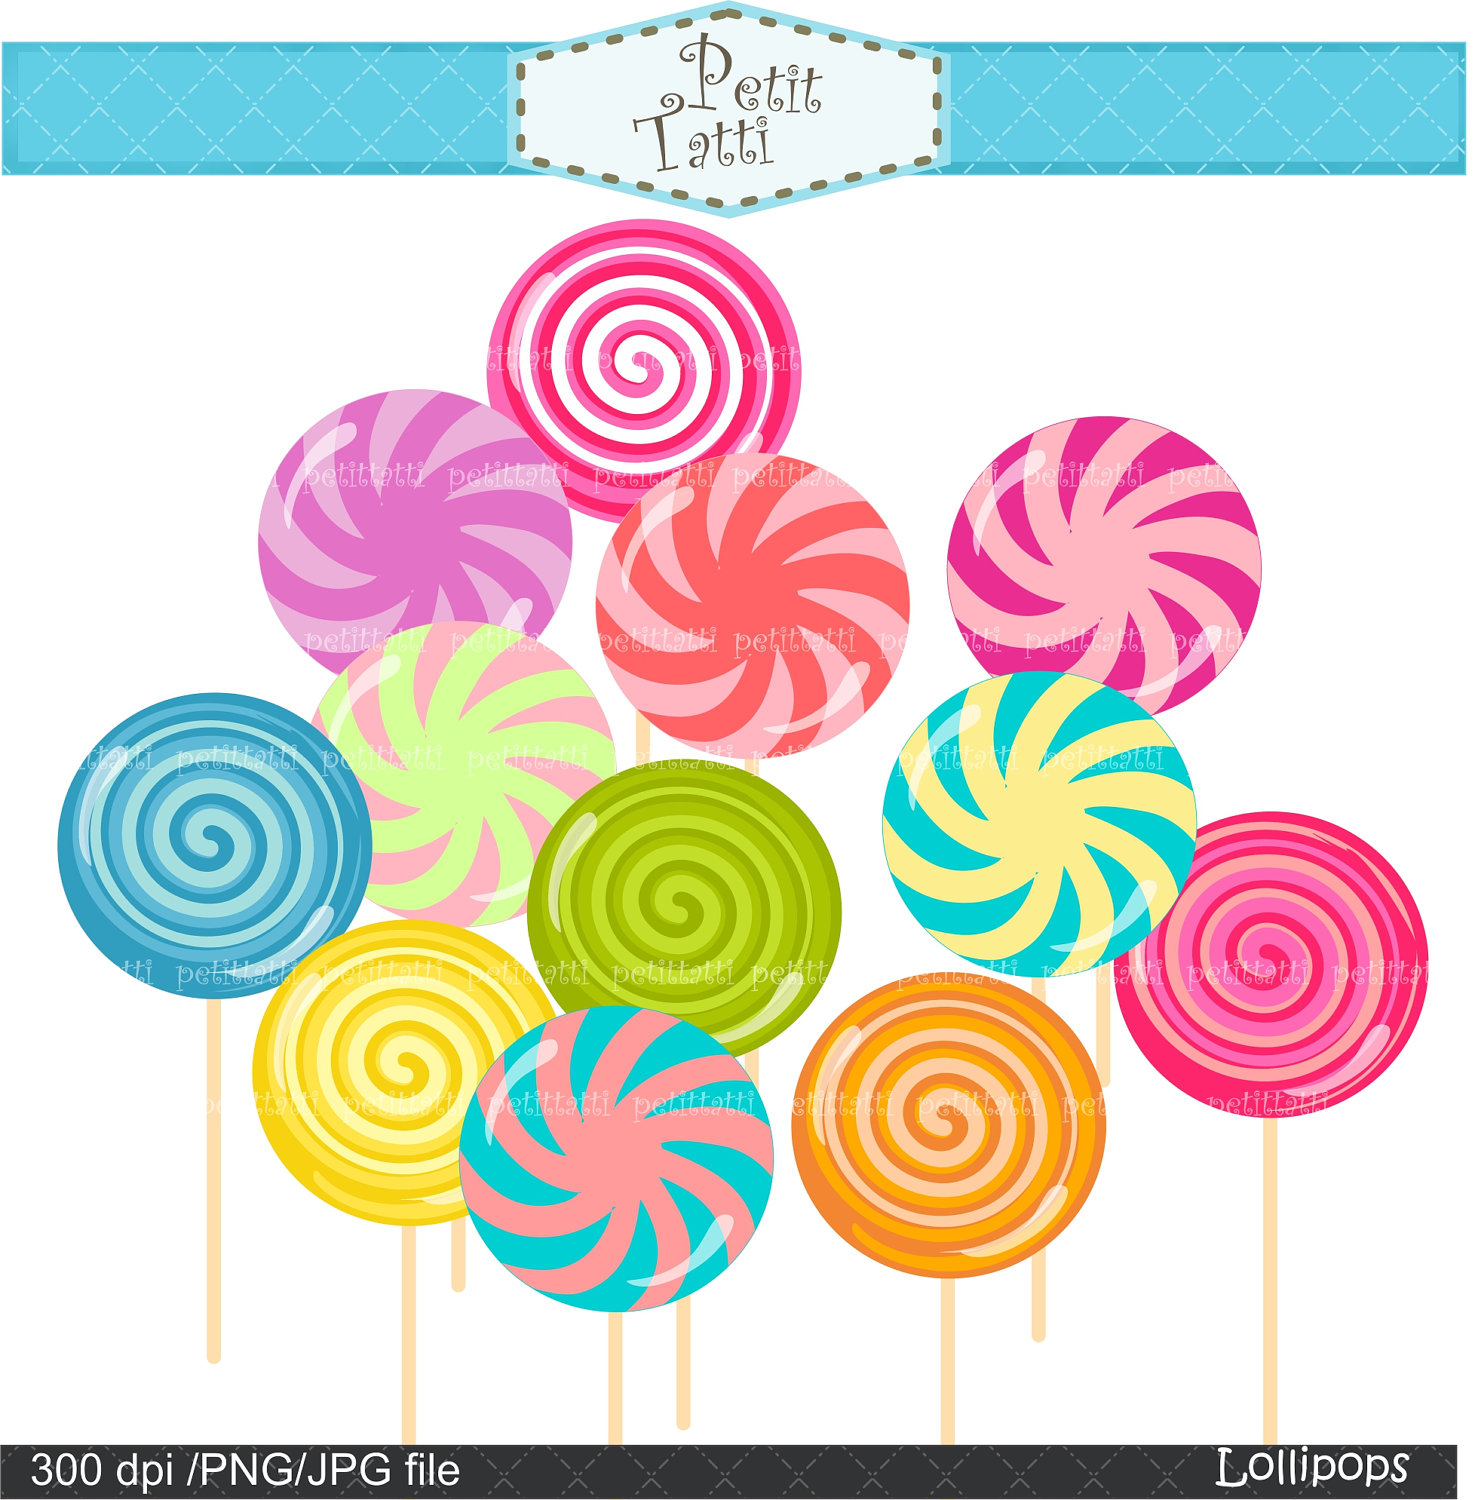 Lollipop clipart pink candy Clipart Lollipop cliparts Lollipop Candy